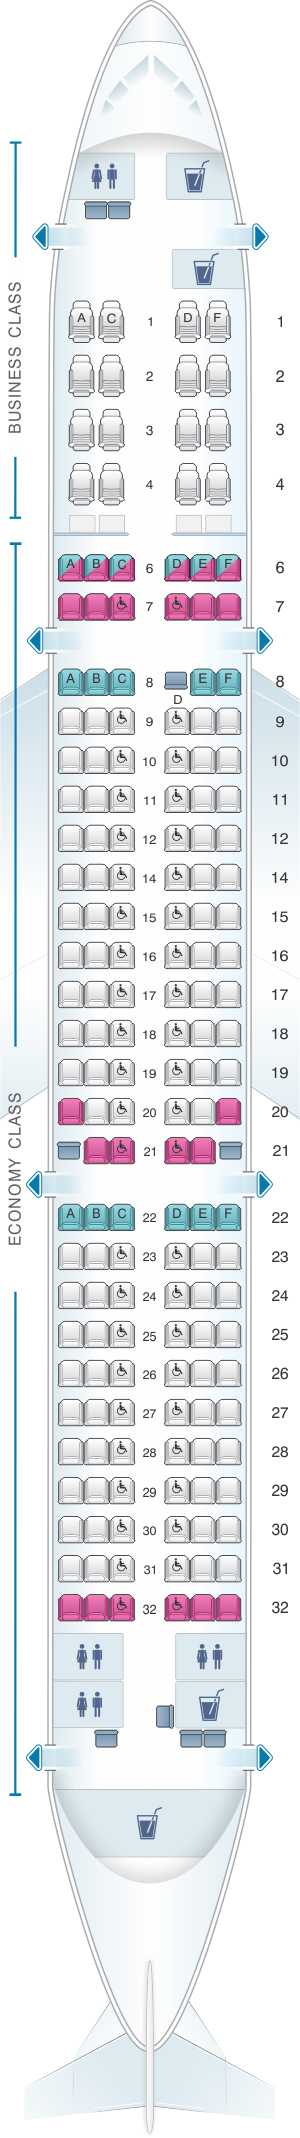 Seat Map SriLankan Airlines Airbus A321 231 SriLankan Airlines - Us Airways A321 Seat Map